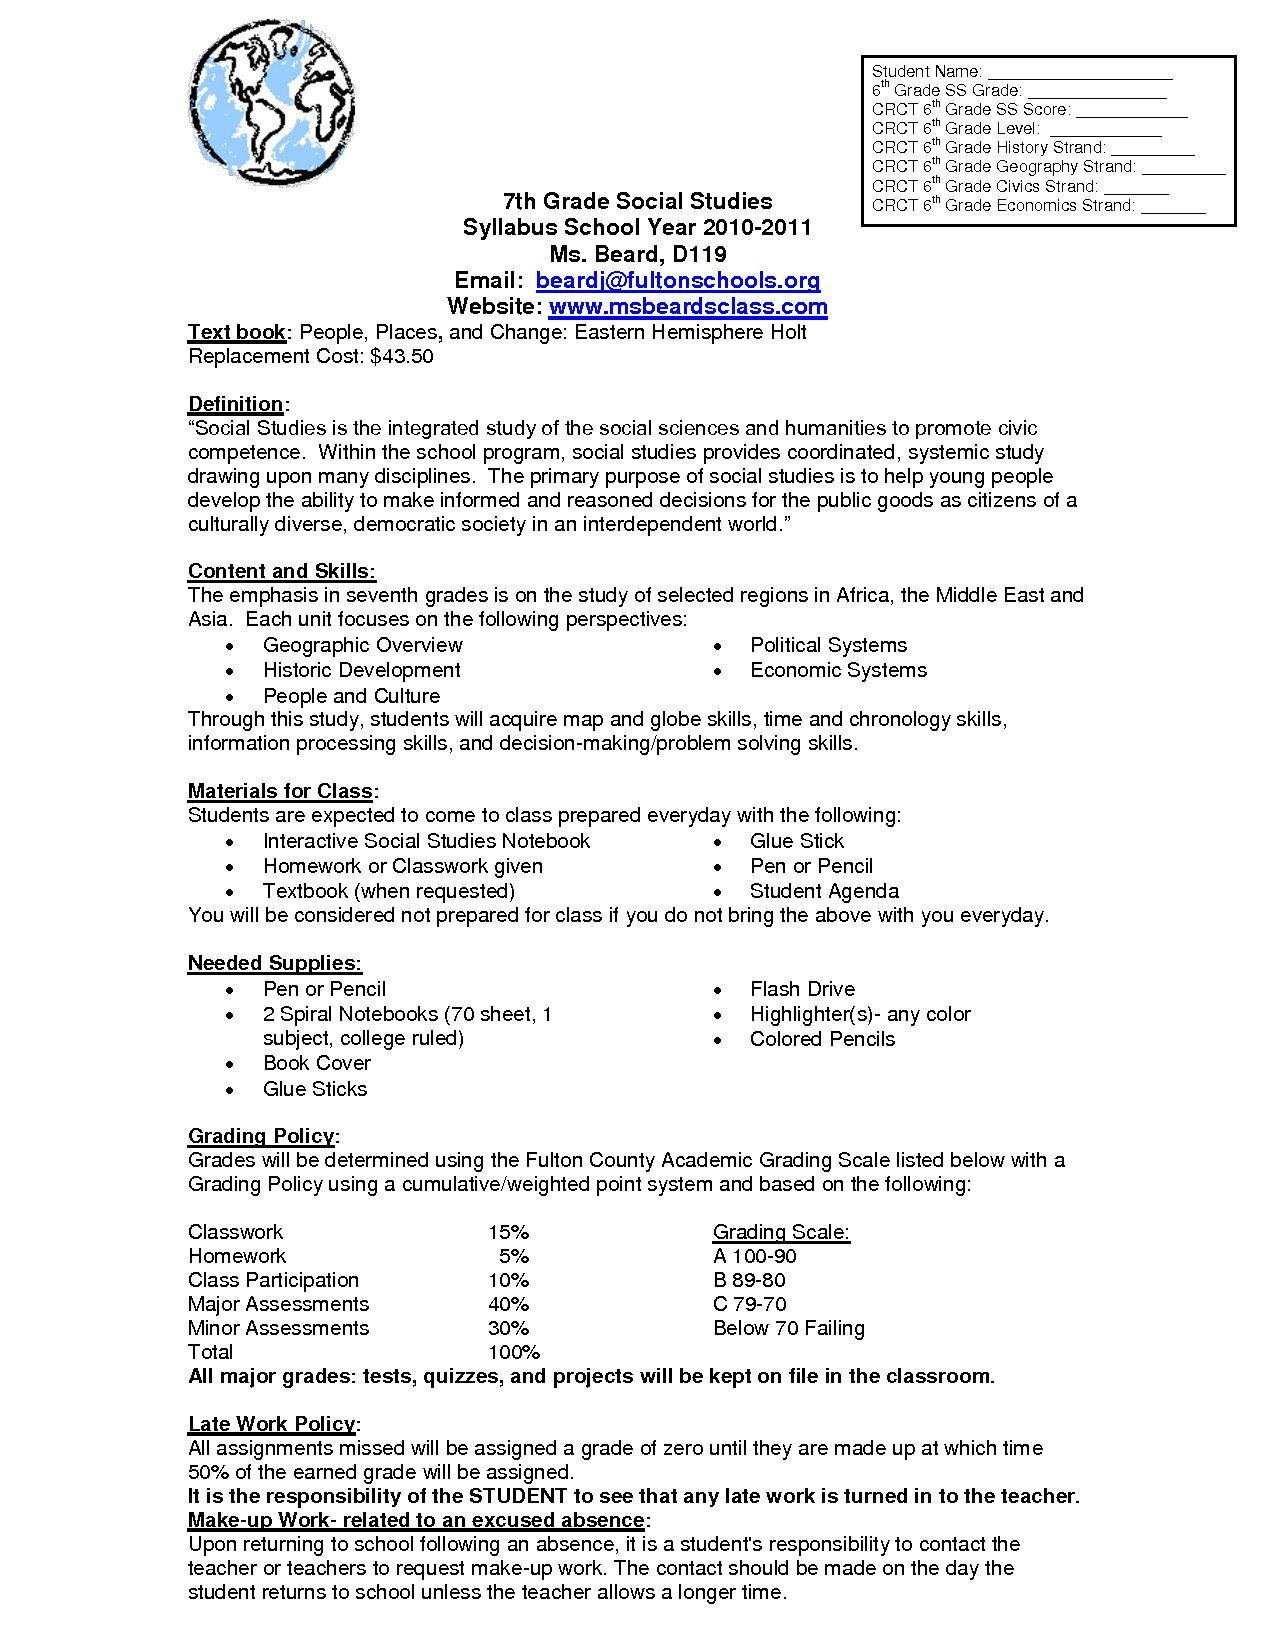 9th Grade Social Stu S Worksheets Best Social Stu S For